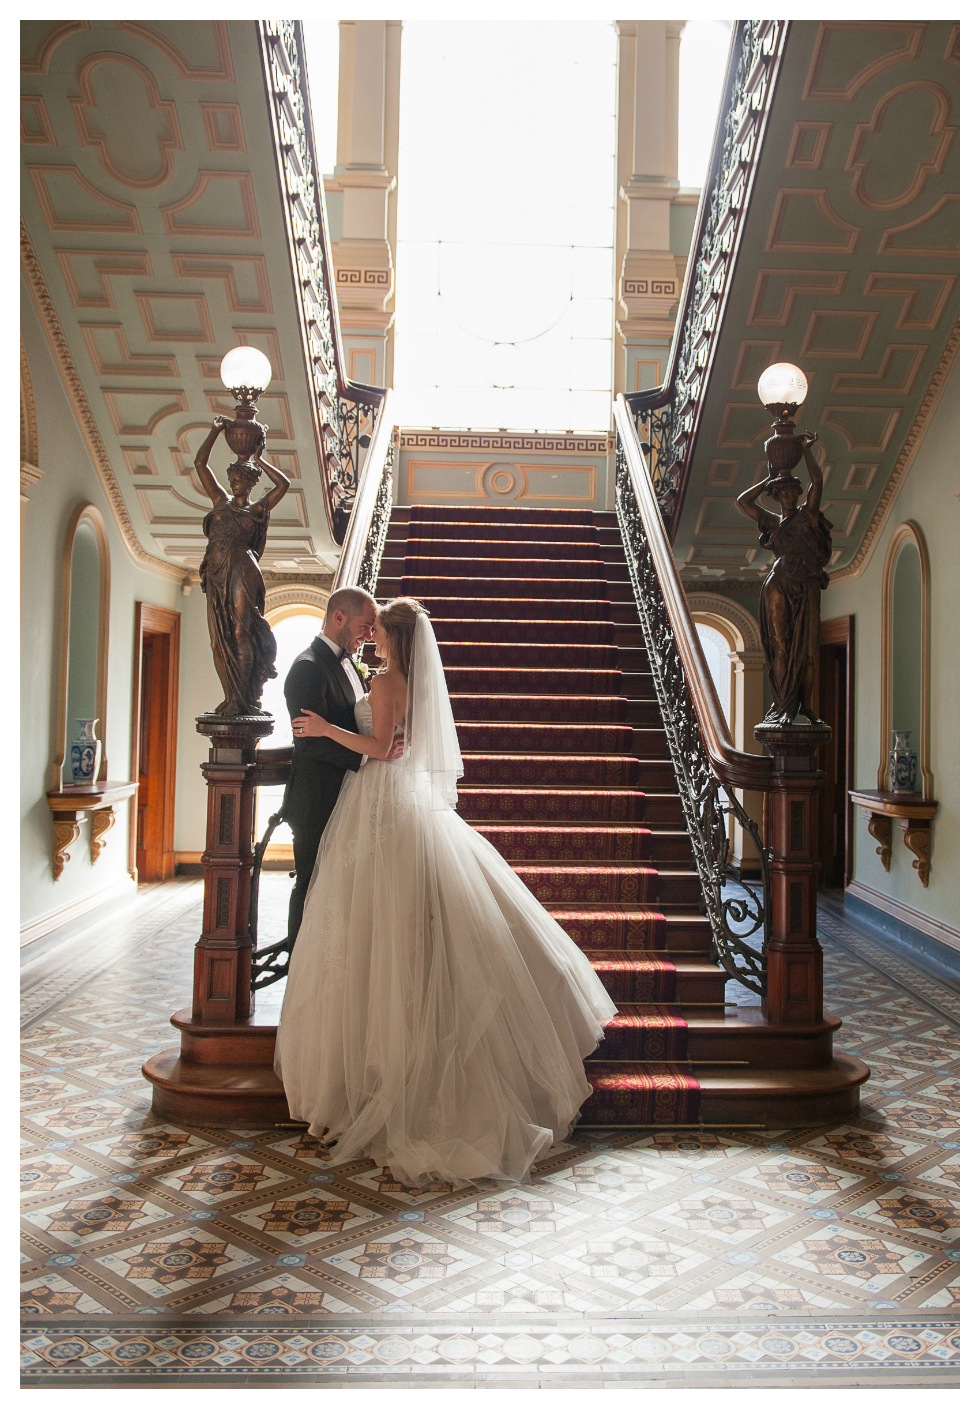 werribee mansion wedding, werribee wedding photographer, werribee mansion